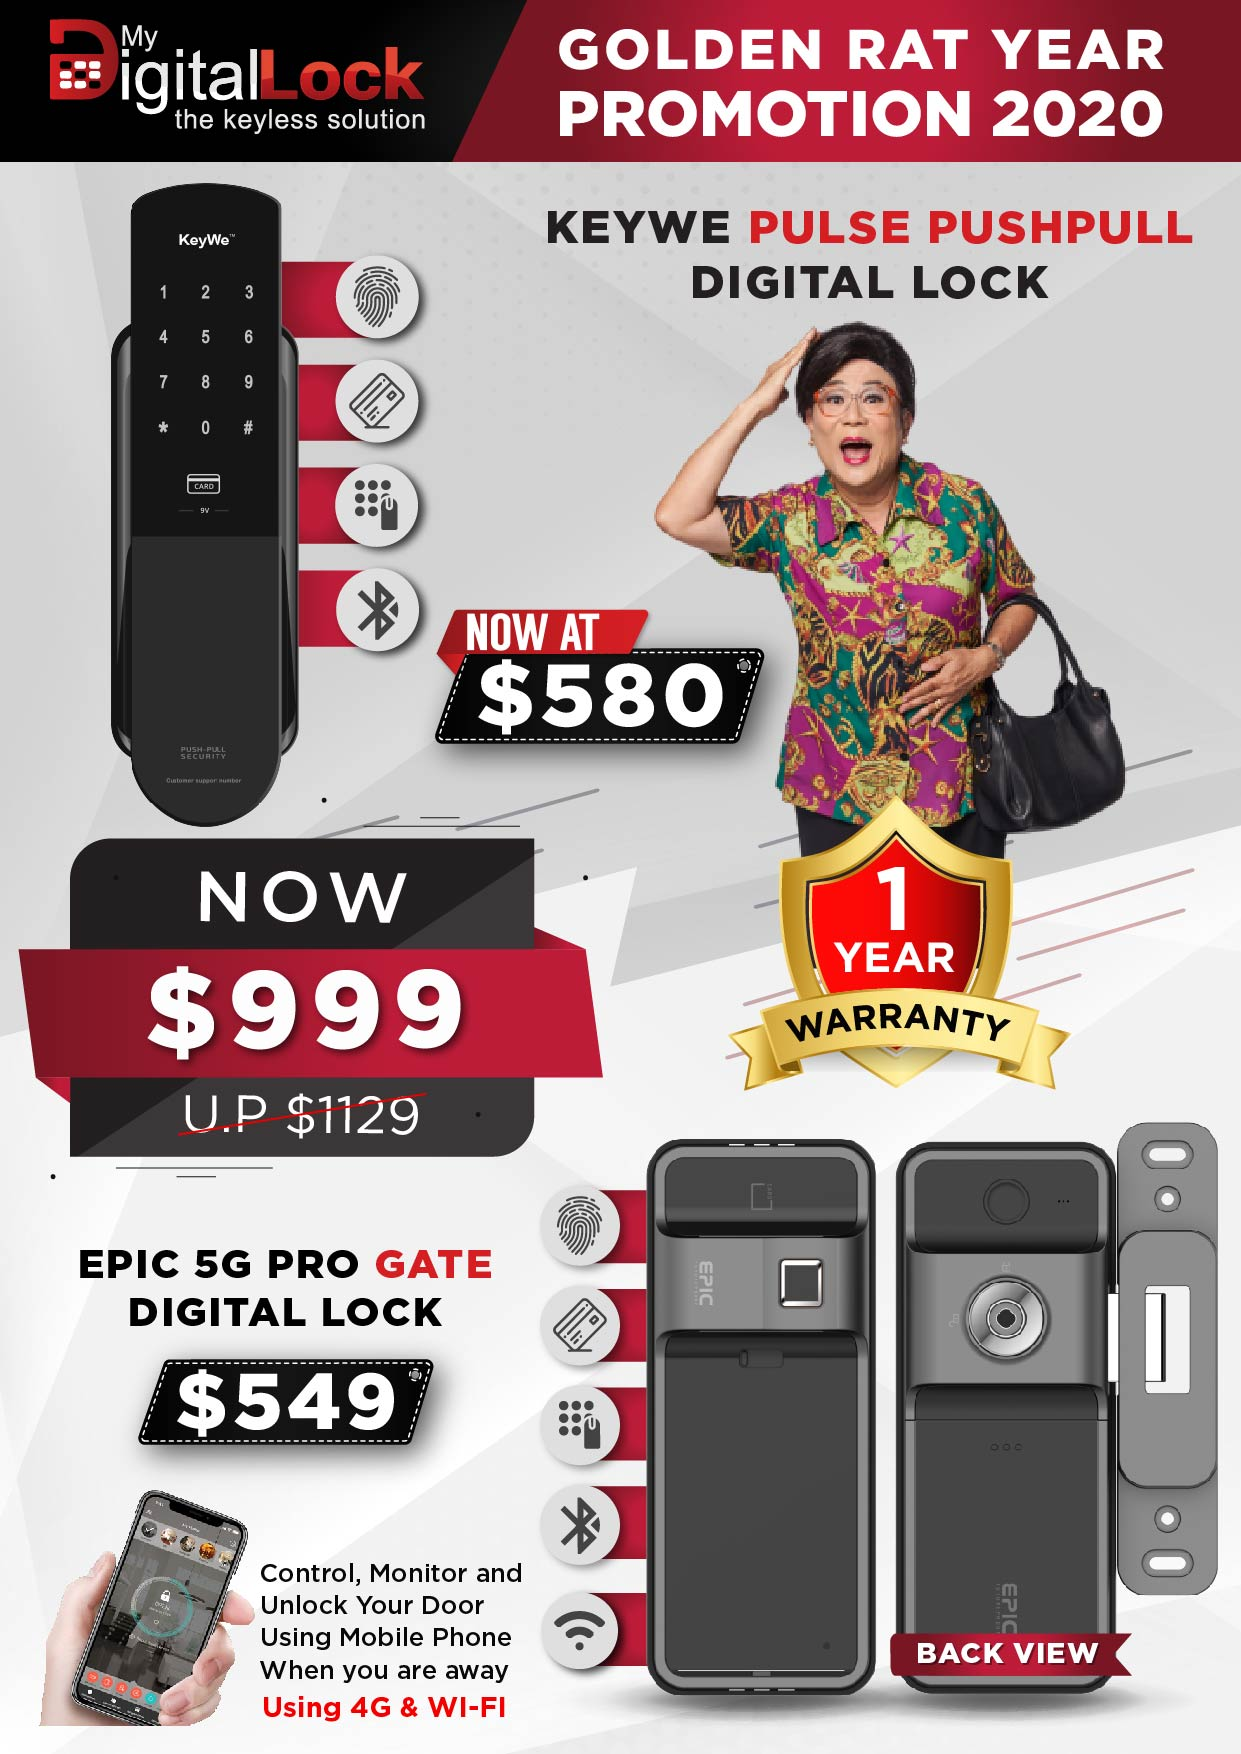 KEYWE Pulse Push Pull and EPIC 5G PRO Gate Digital Lock